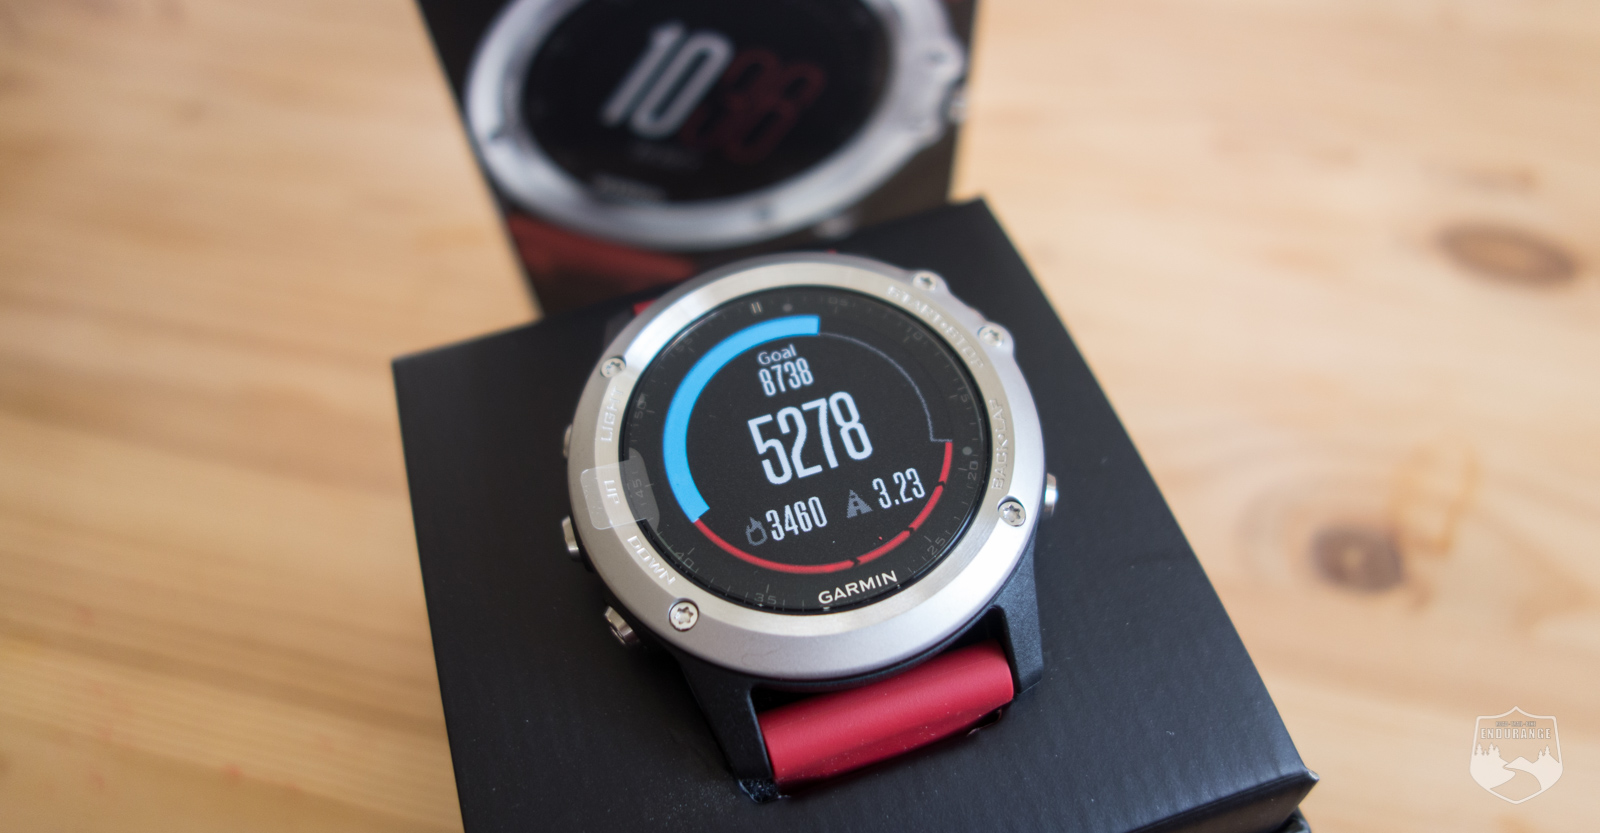 garmin fenix 3 laufuhr gps uhr endurange. Black Bedroom Furniture Sets. Home Design Ideas